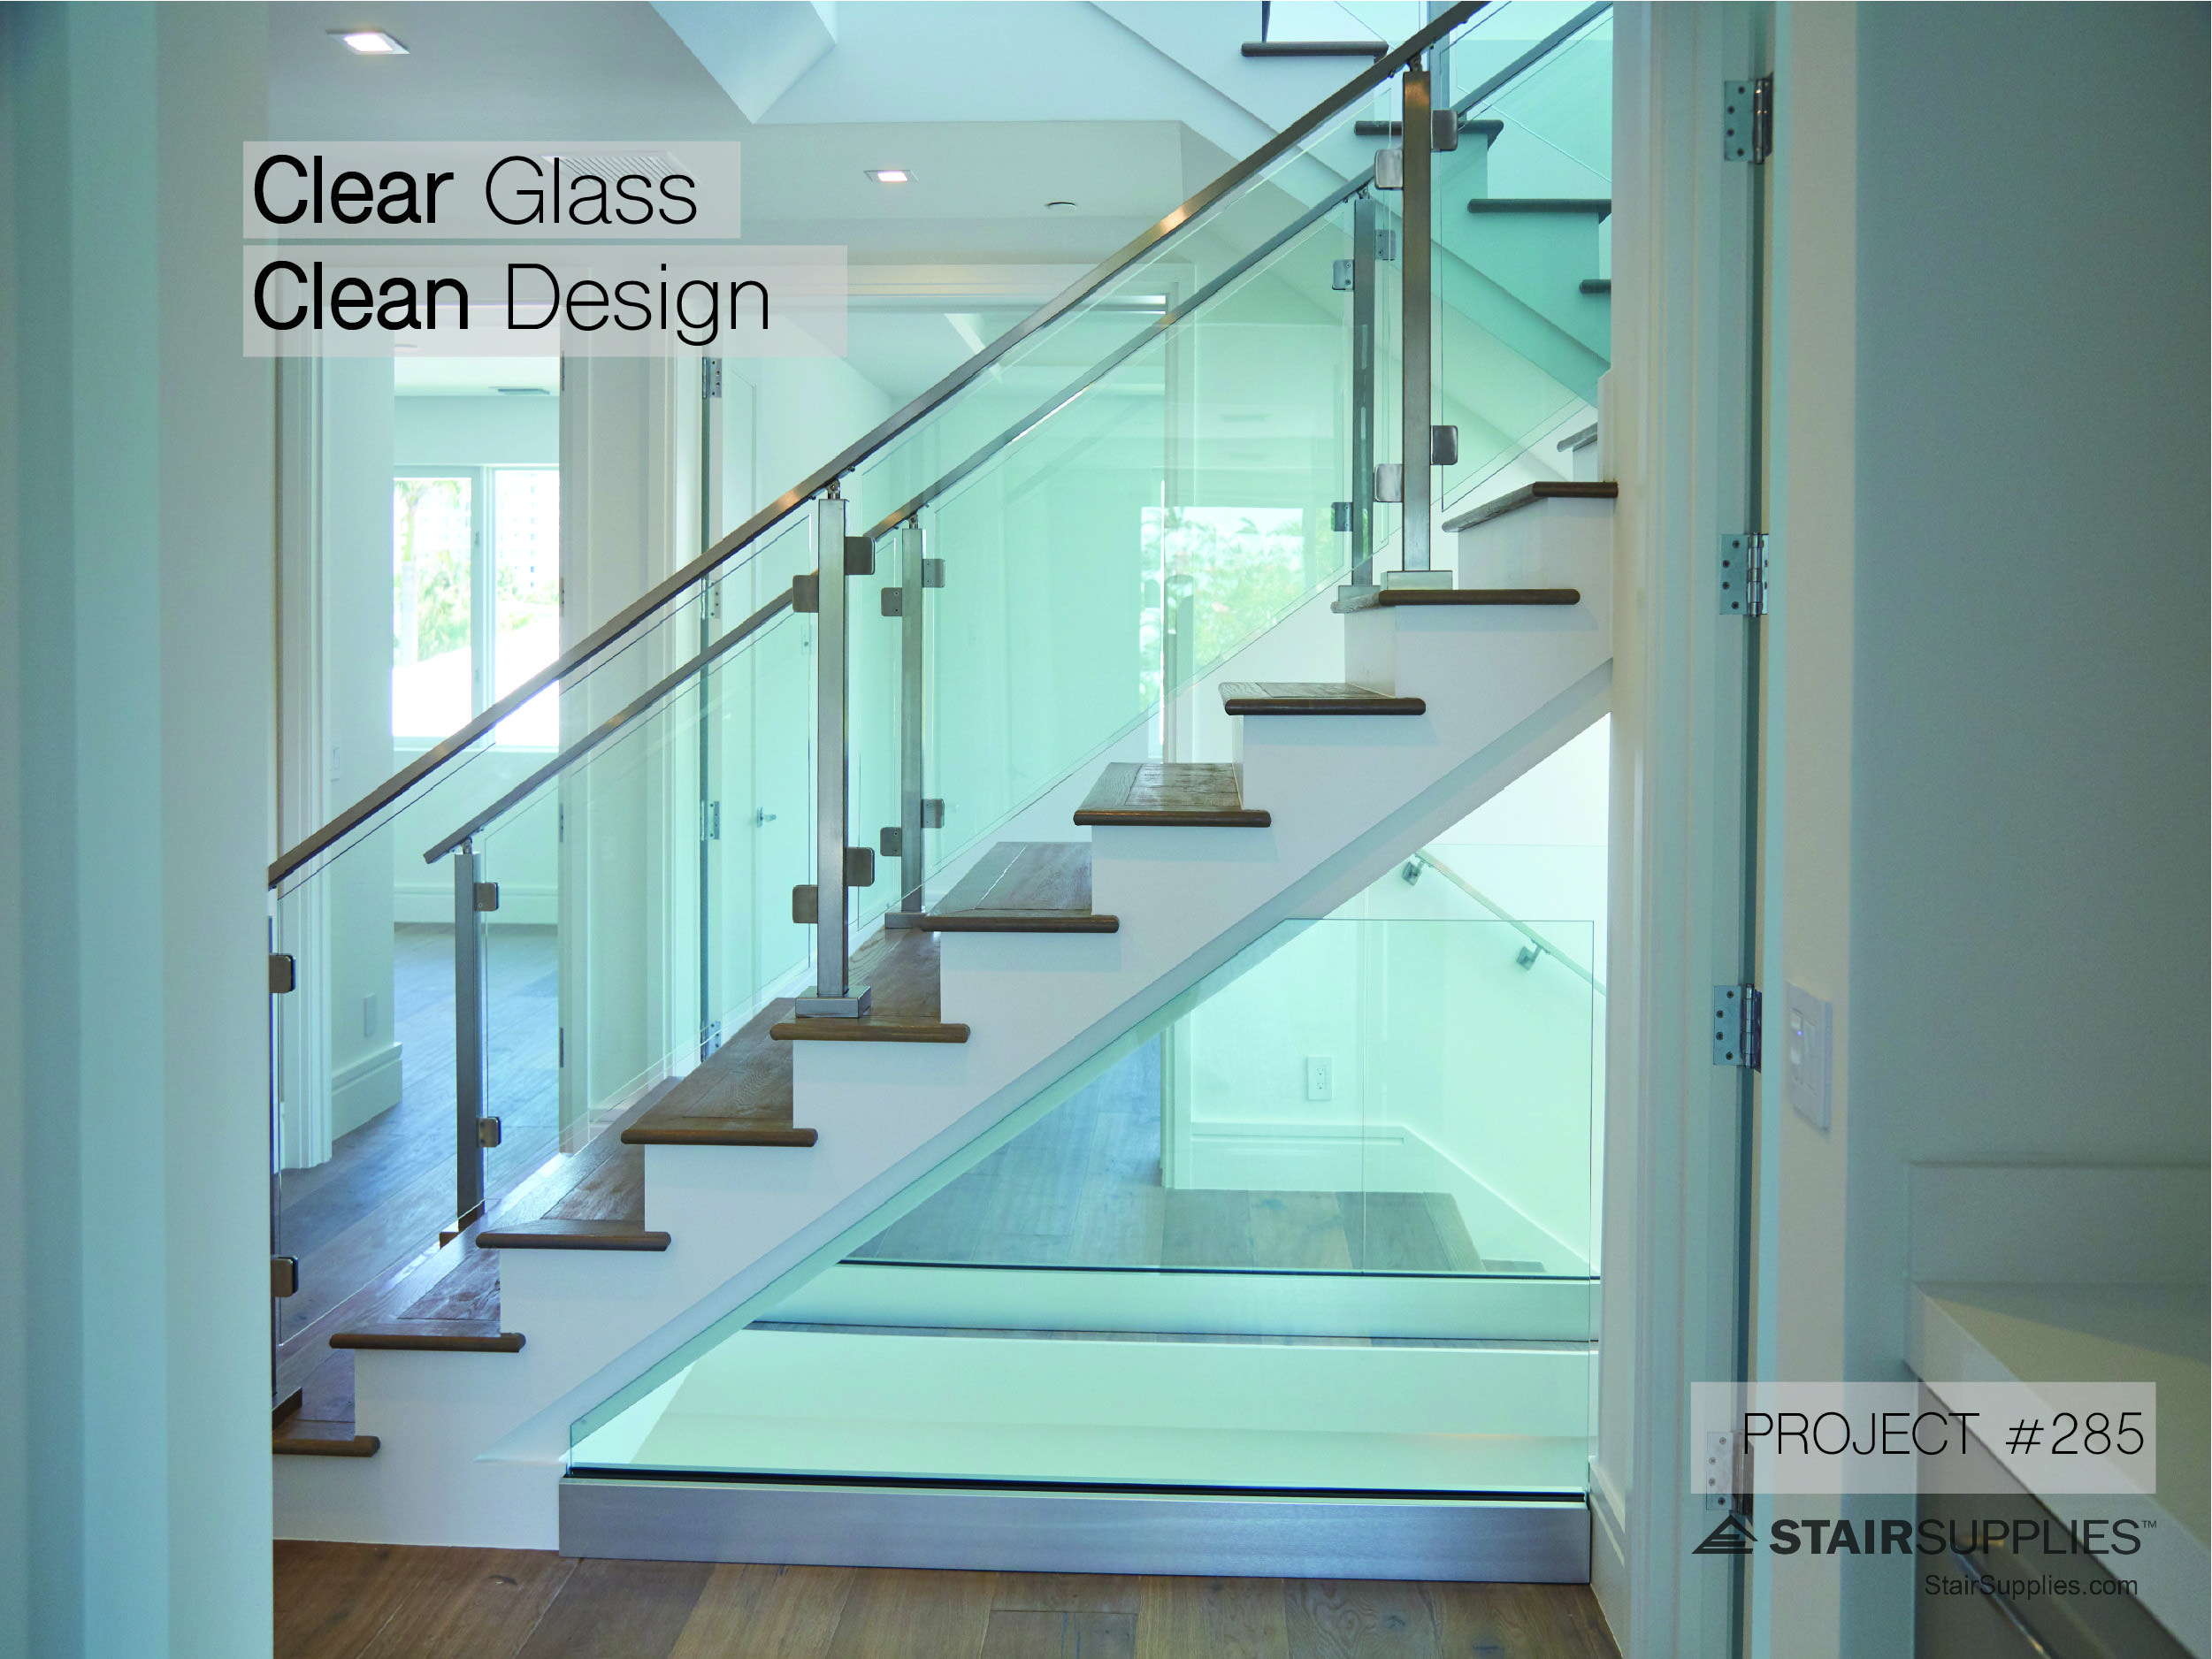 Completed Project 285 Stairsupplies Glass Stairs Staircase Remodel Staircase Design